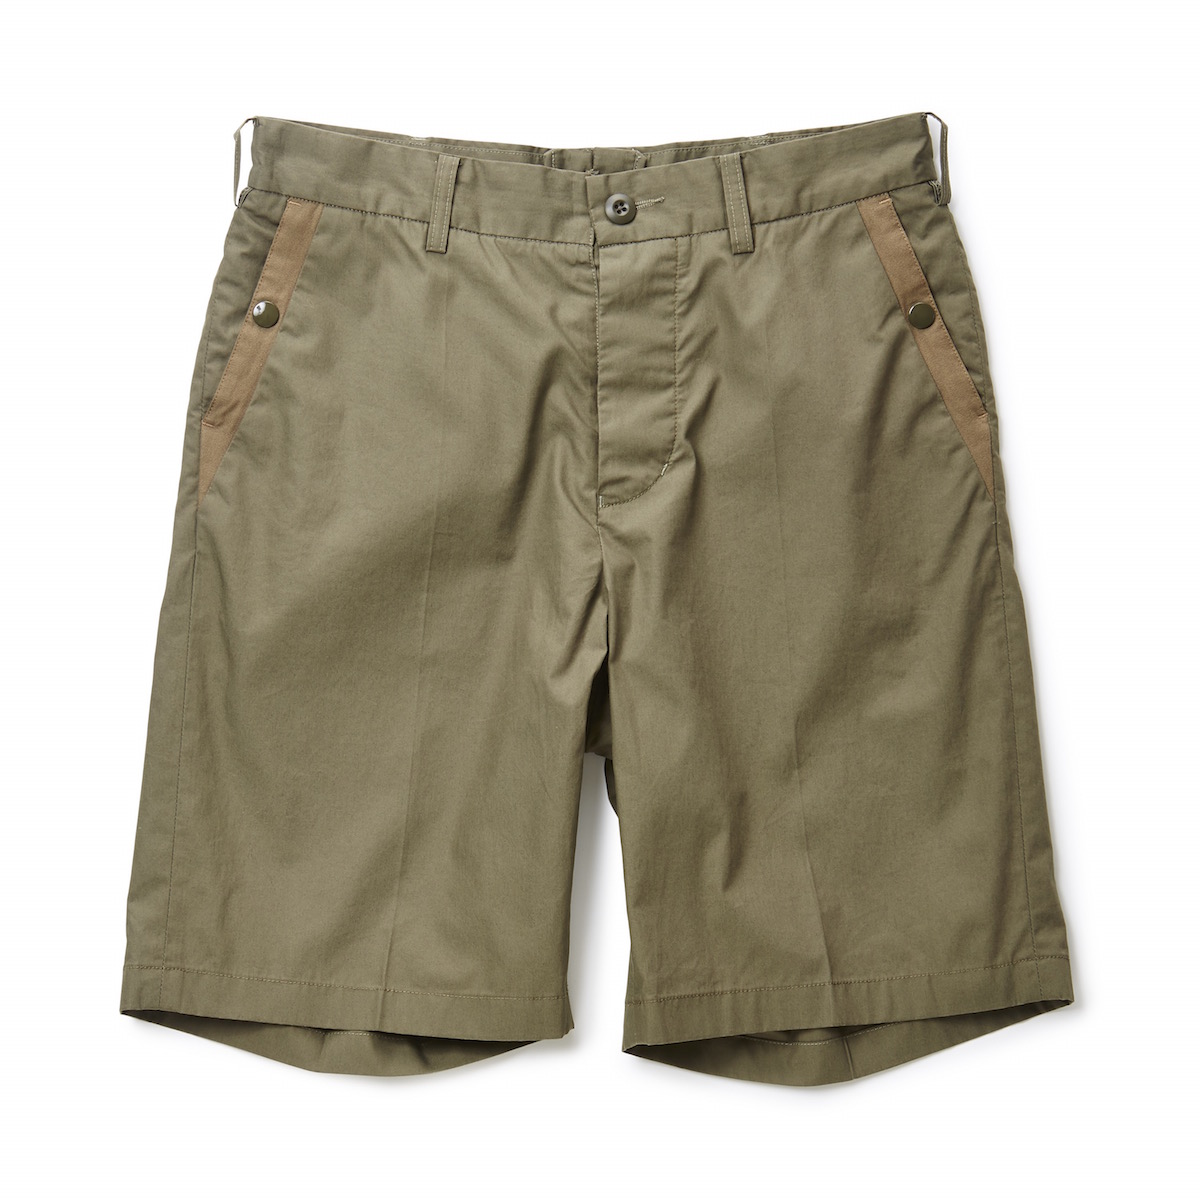 NEXUSVII TROPICAL FATIGUE SHORTS